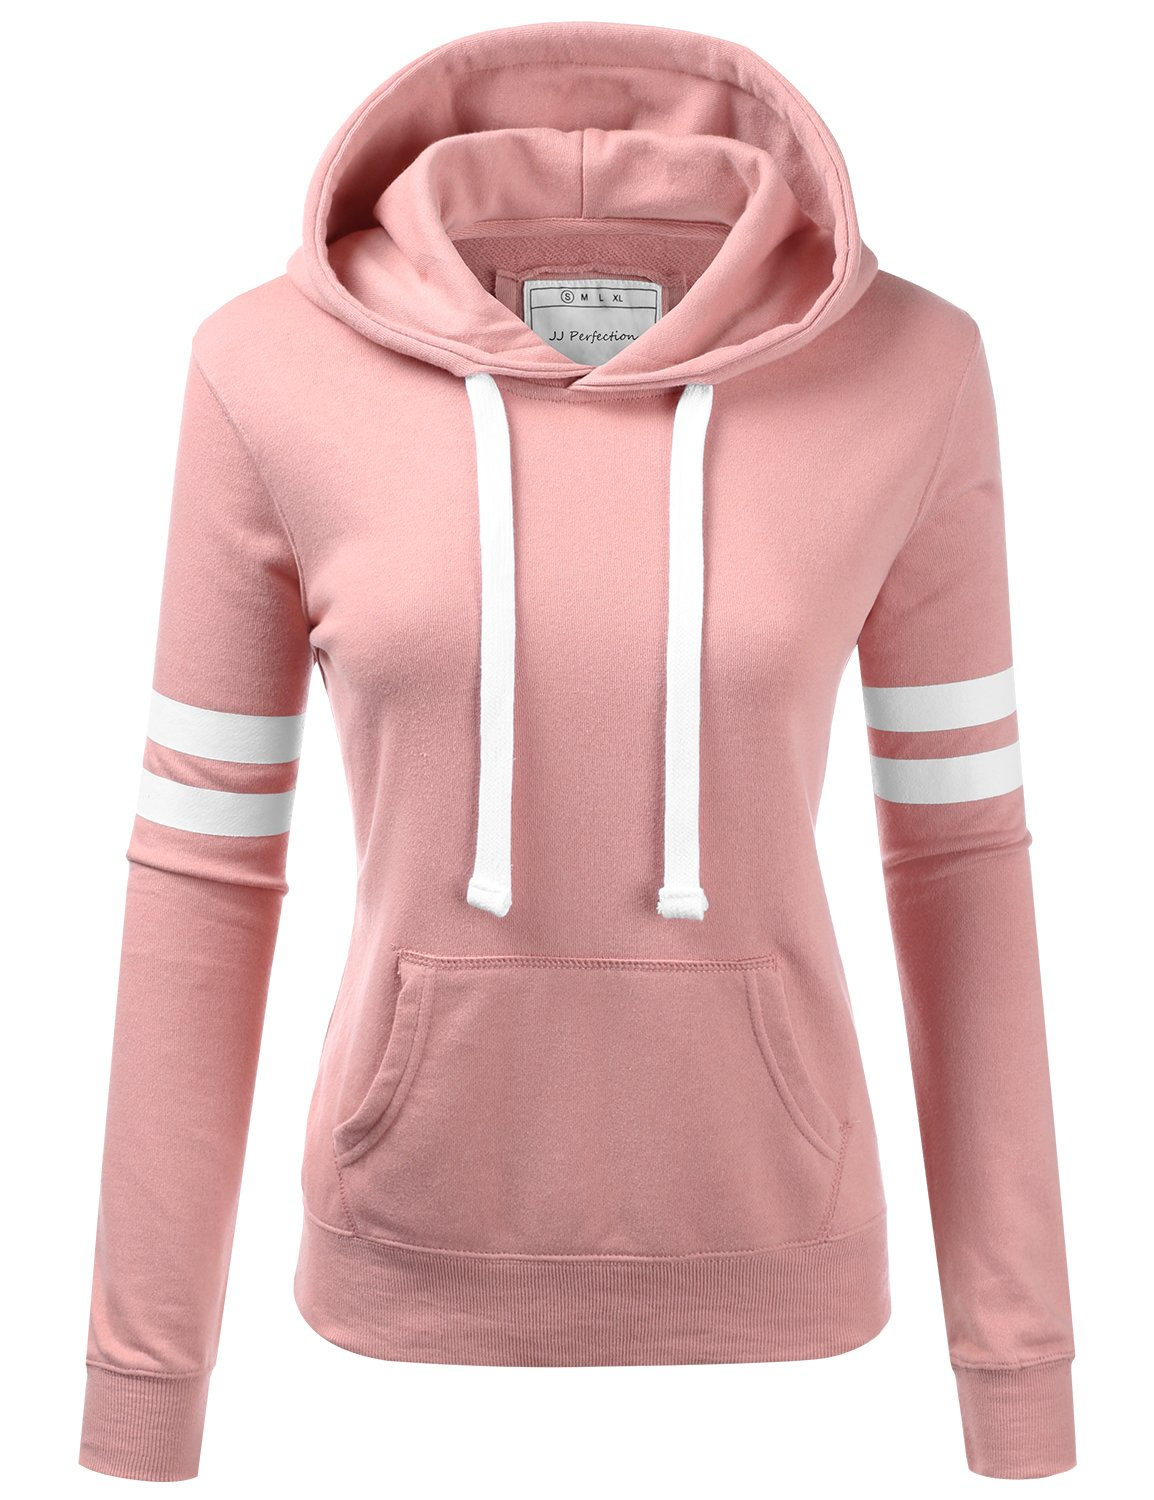 NINEXIS Womens Long Sleeve Terry Hoodie Double Arm Line Pullover Sweatshirts MAUVEPINK XL